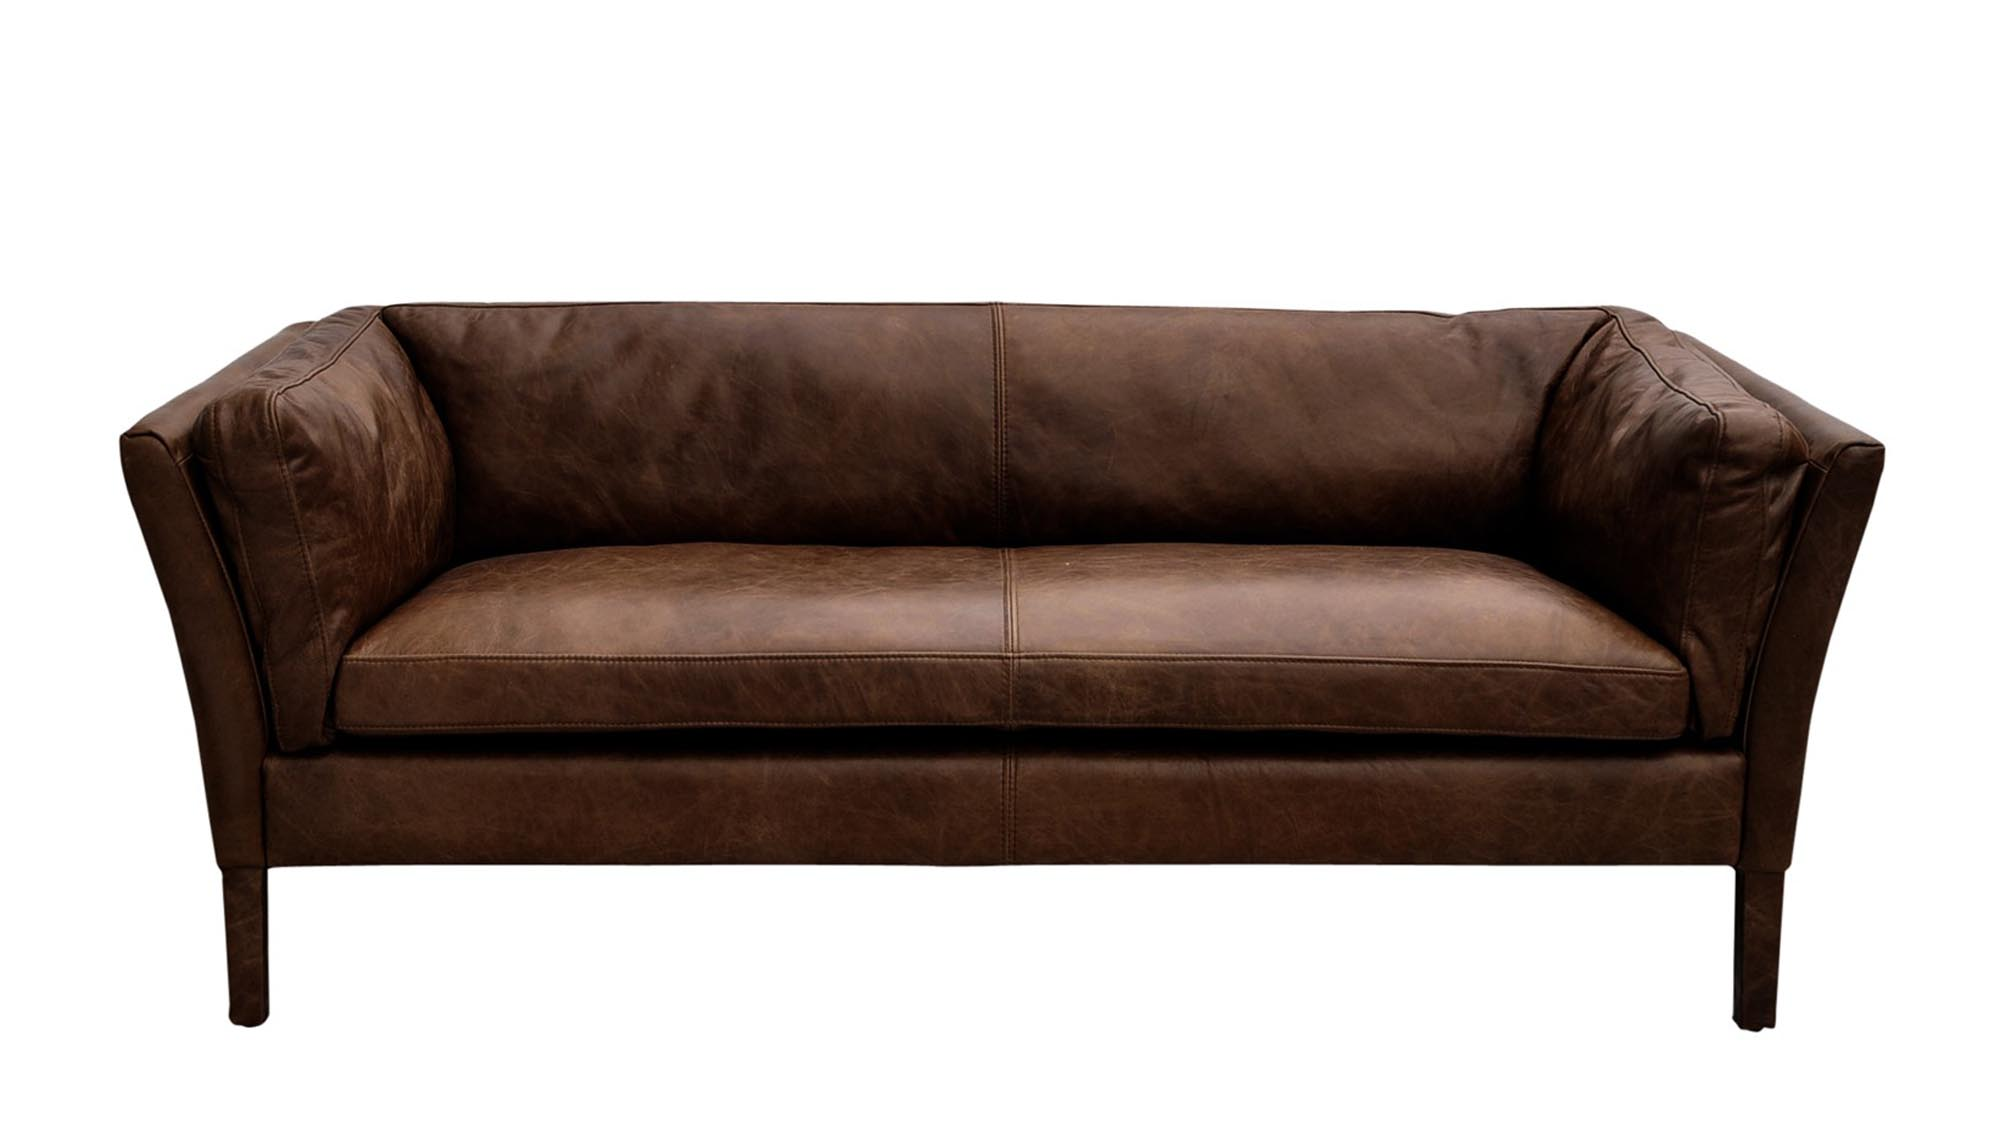 Best sofa 2018 find the perfect sofa for your living room for Best place to buy a leather sofa